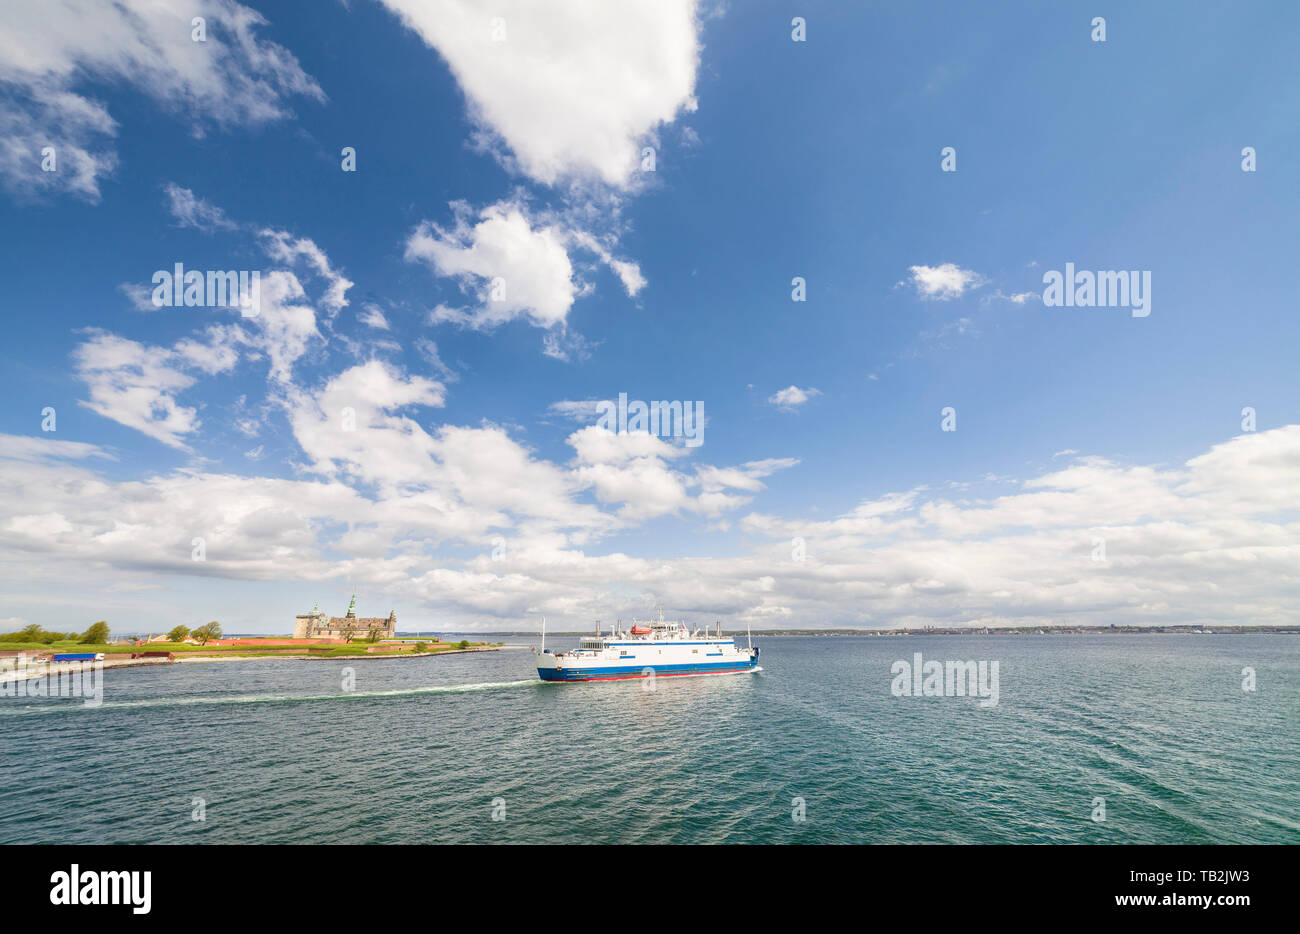 Car ferry to Helsingborg, Sweden, leaving the port of Helsingor, Denmark, with the Kronoborg castle in the background. Logos and brandings removed. - Stock Image